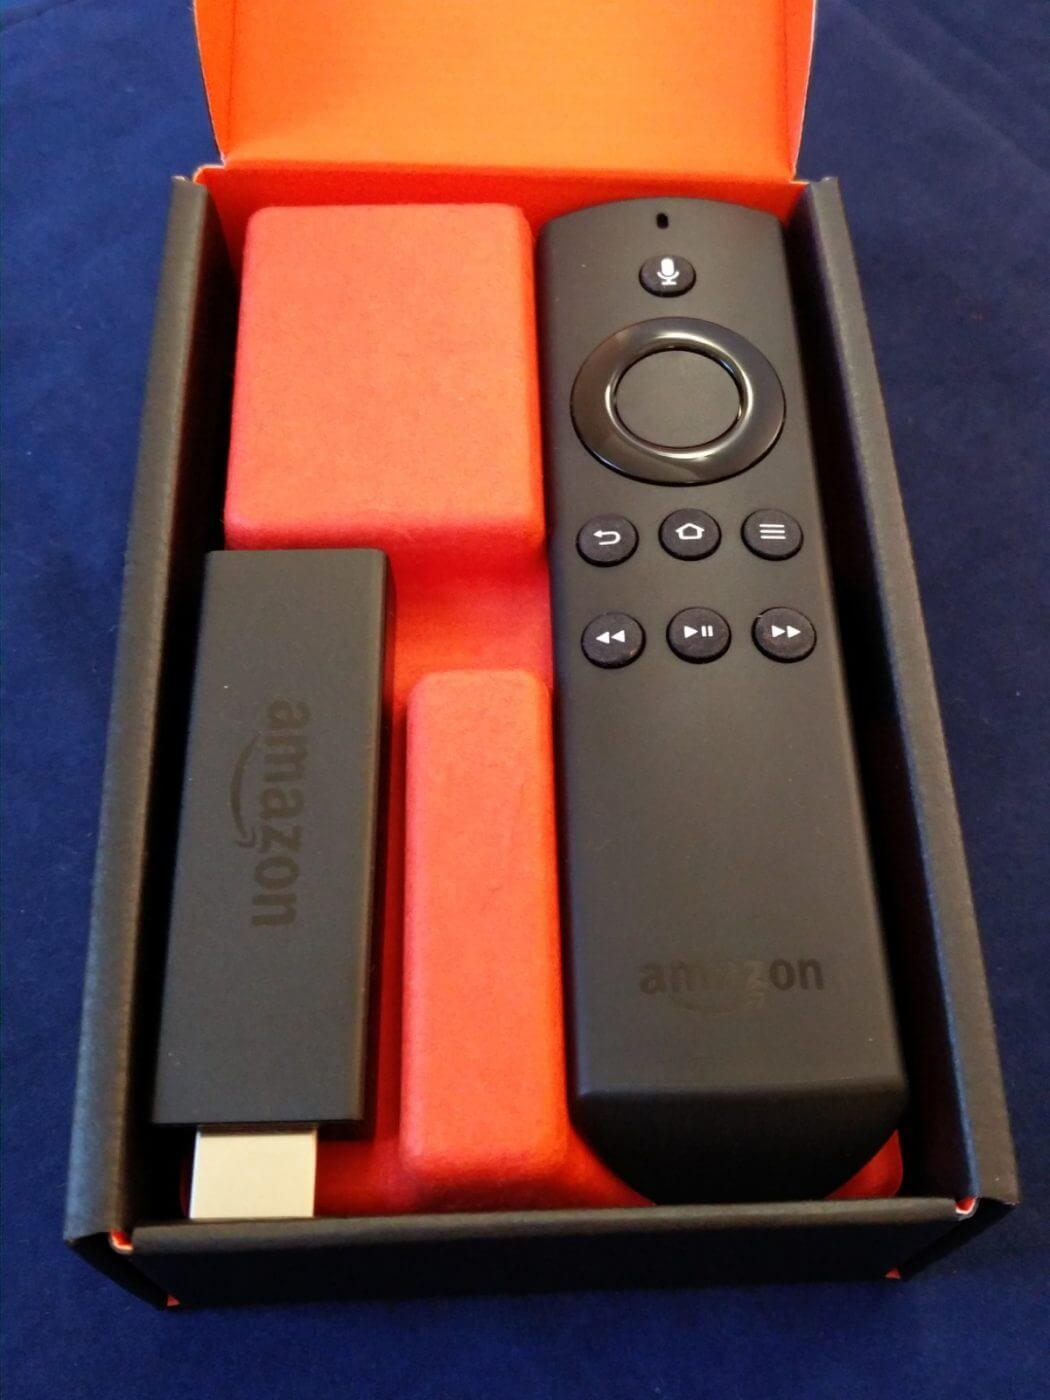 Fire TV Stick in Box